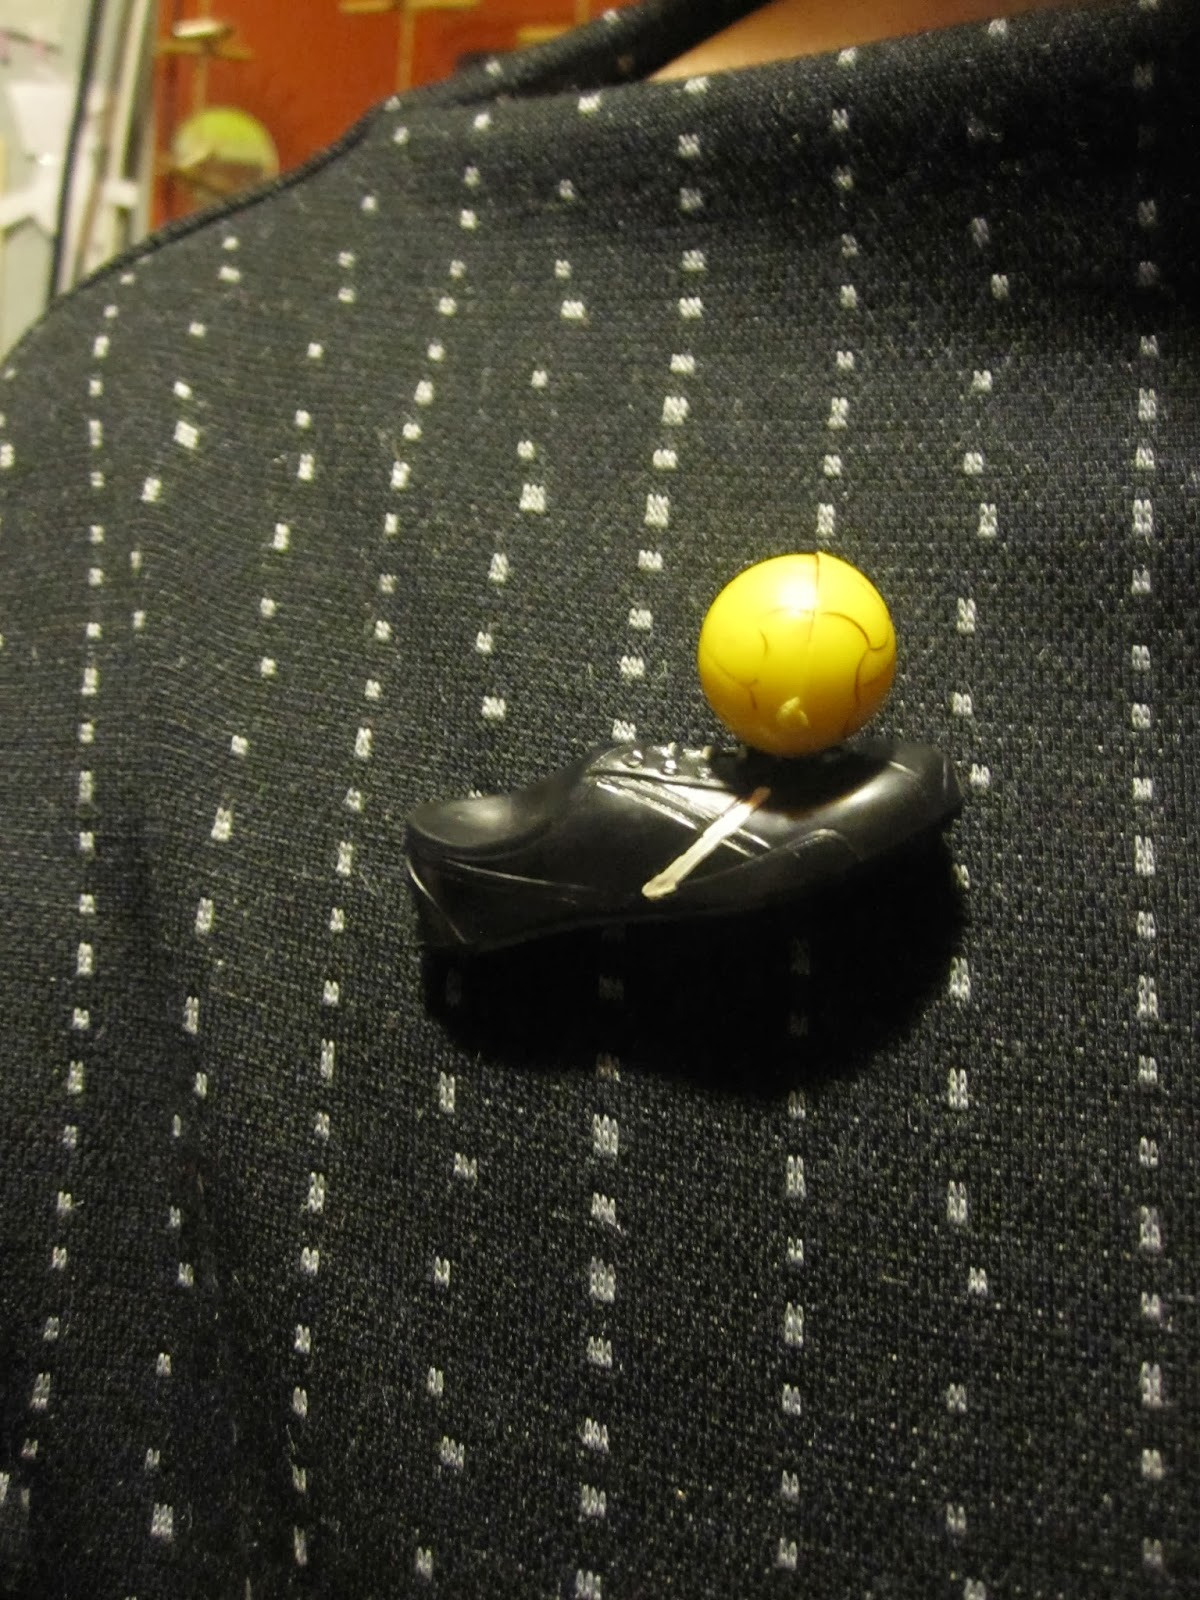 penalty brooch , The Undertones badge , Cockney Rebel pinback button, axe brooch vintage 1970 70s 70's 1970s 1960 60s 1960s 60's punk rock good vibrations records plastic celluloid brooch pin football soccer ball shoes sneakers